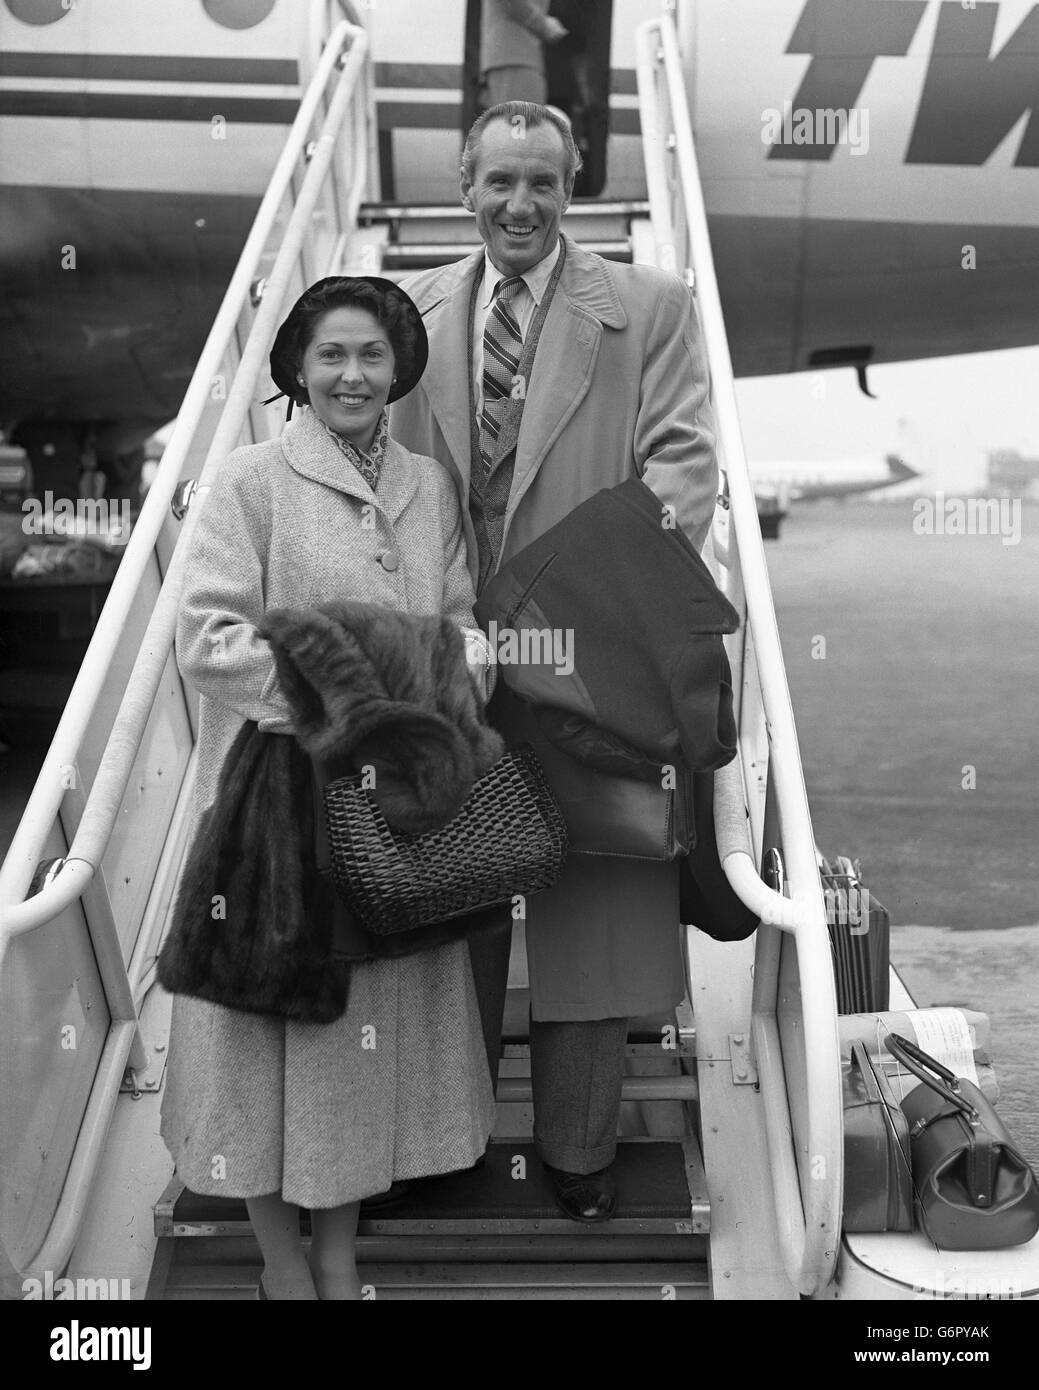 Tennis - Fred Perry with wife Barbara - London Airport - Stock Image